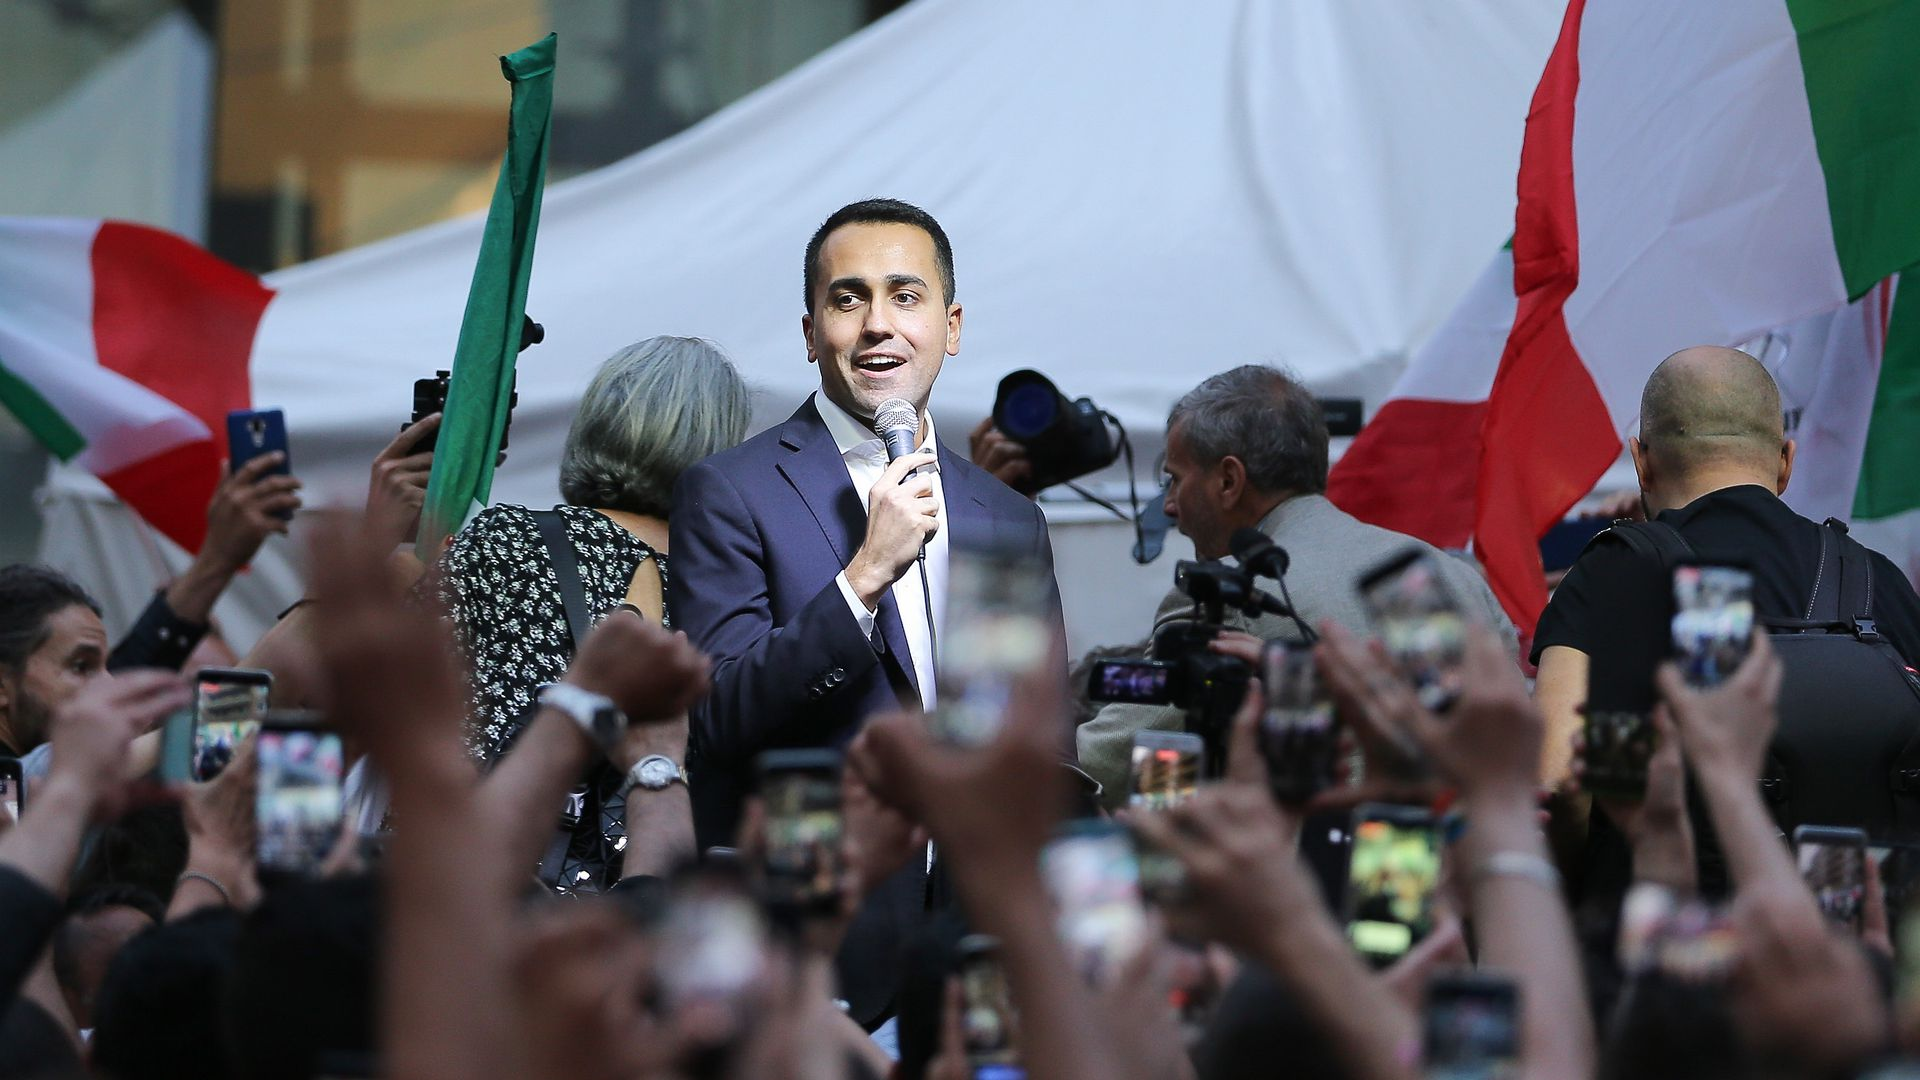 Political leader of the 5 Star Movement, Luigi Di Maio, speaks to the crowd during a meeting in Naples